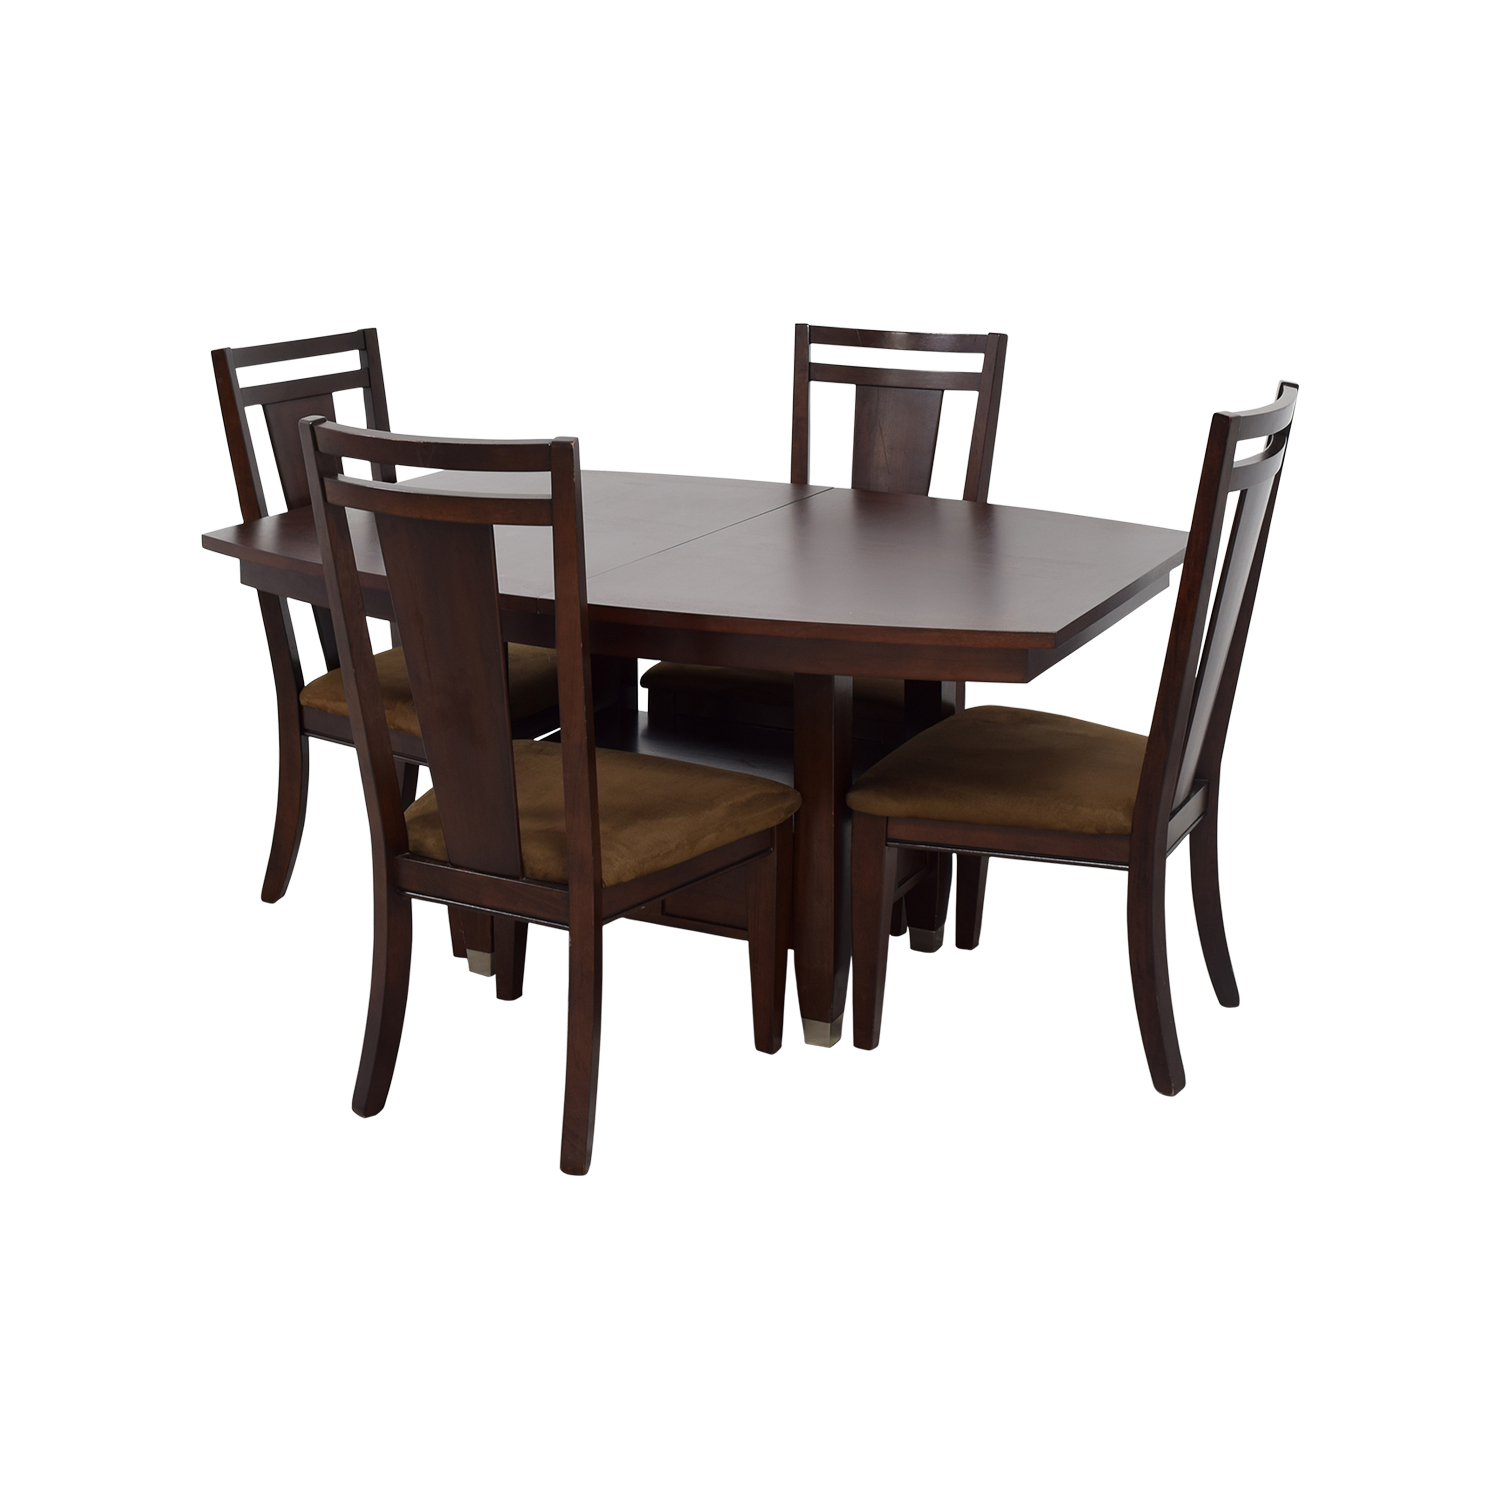 78 OFF  Broyhill Broyhill Wood Dining Table Set  Tables